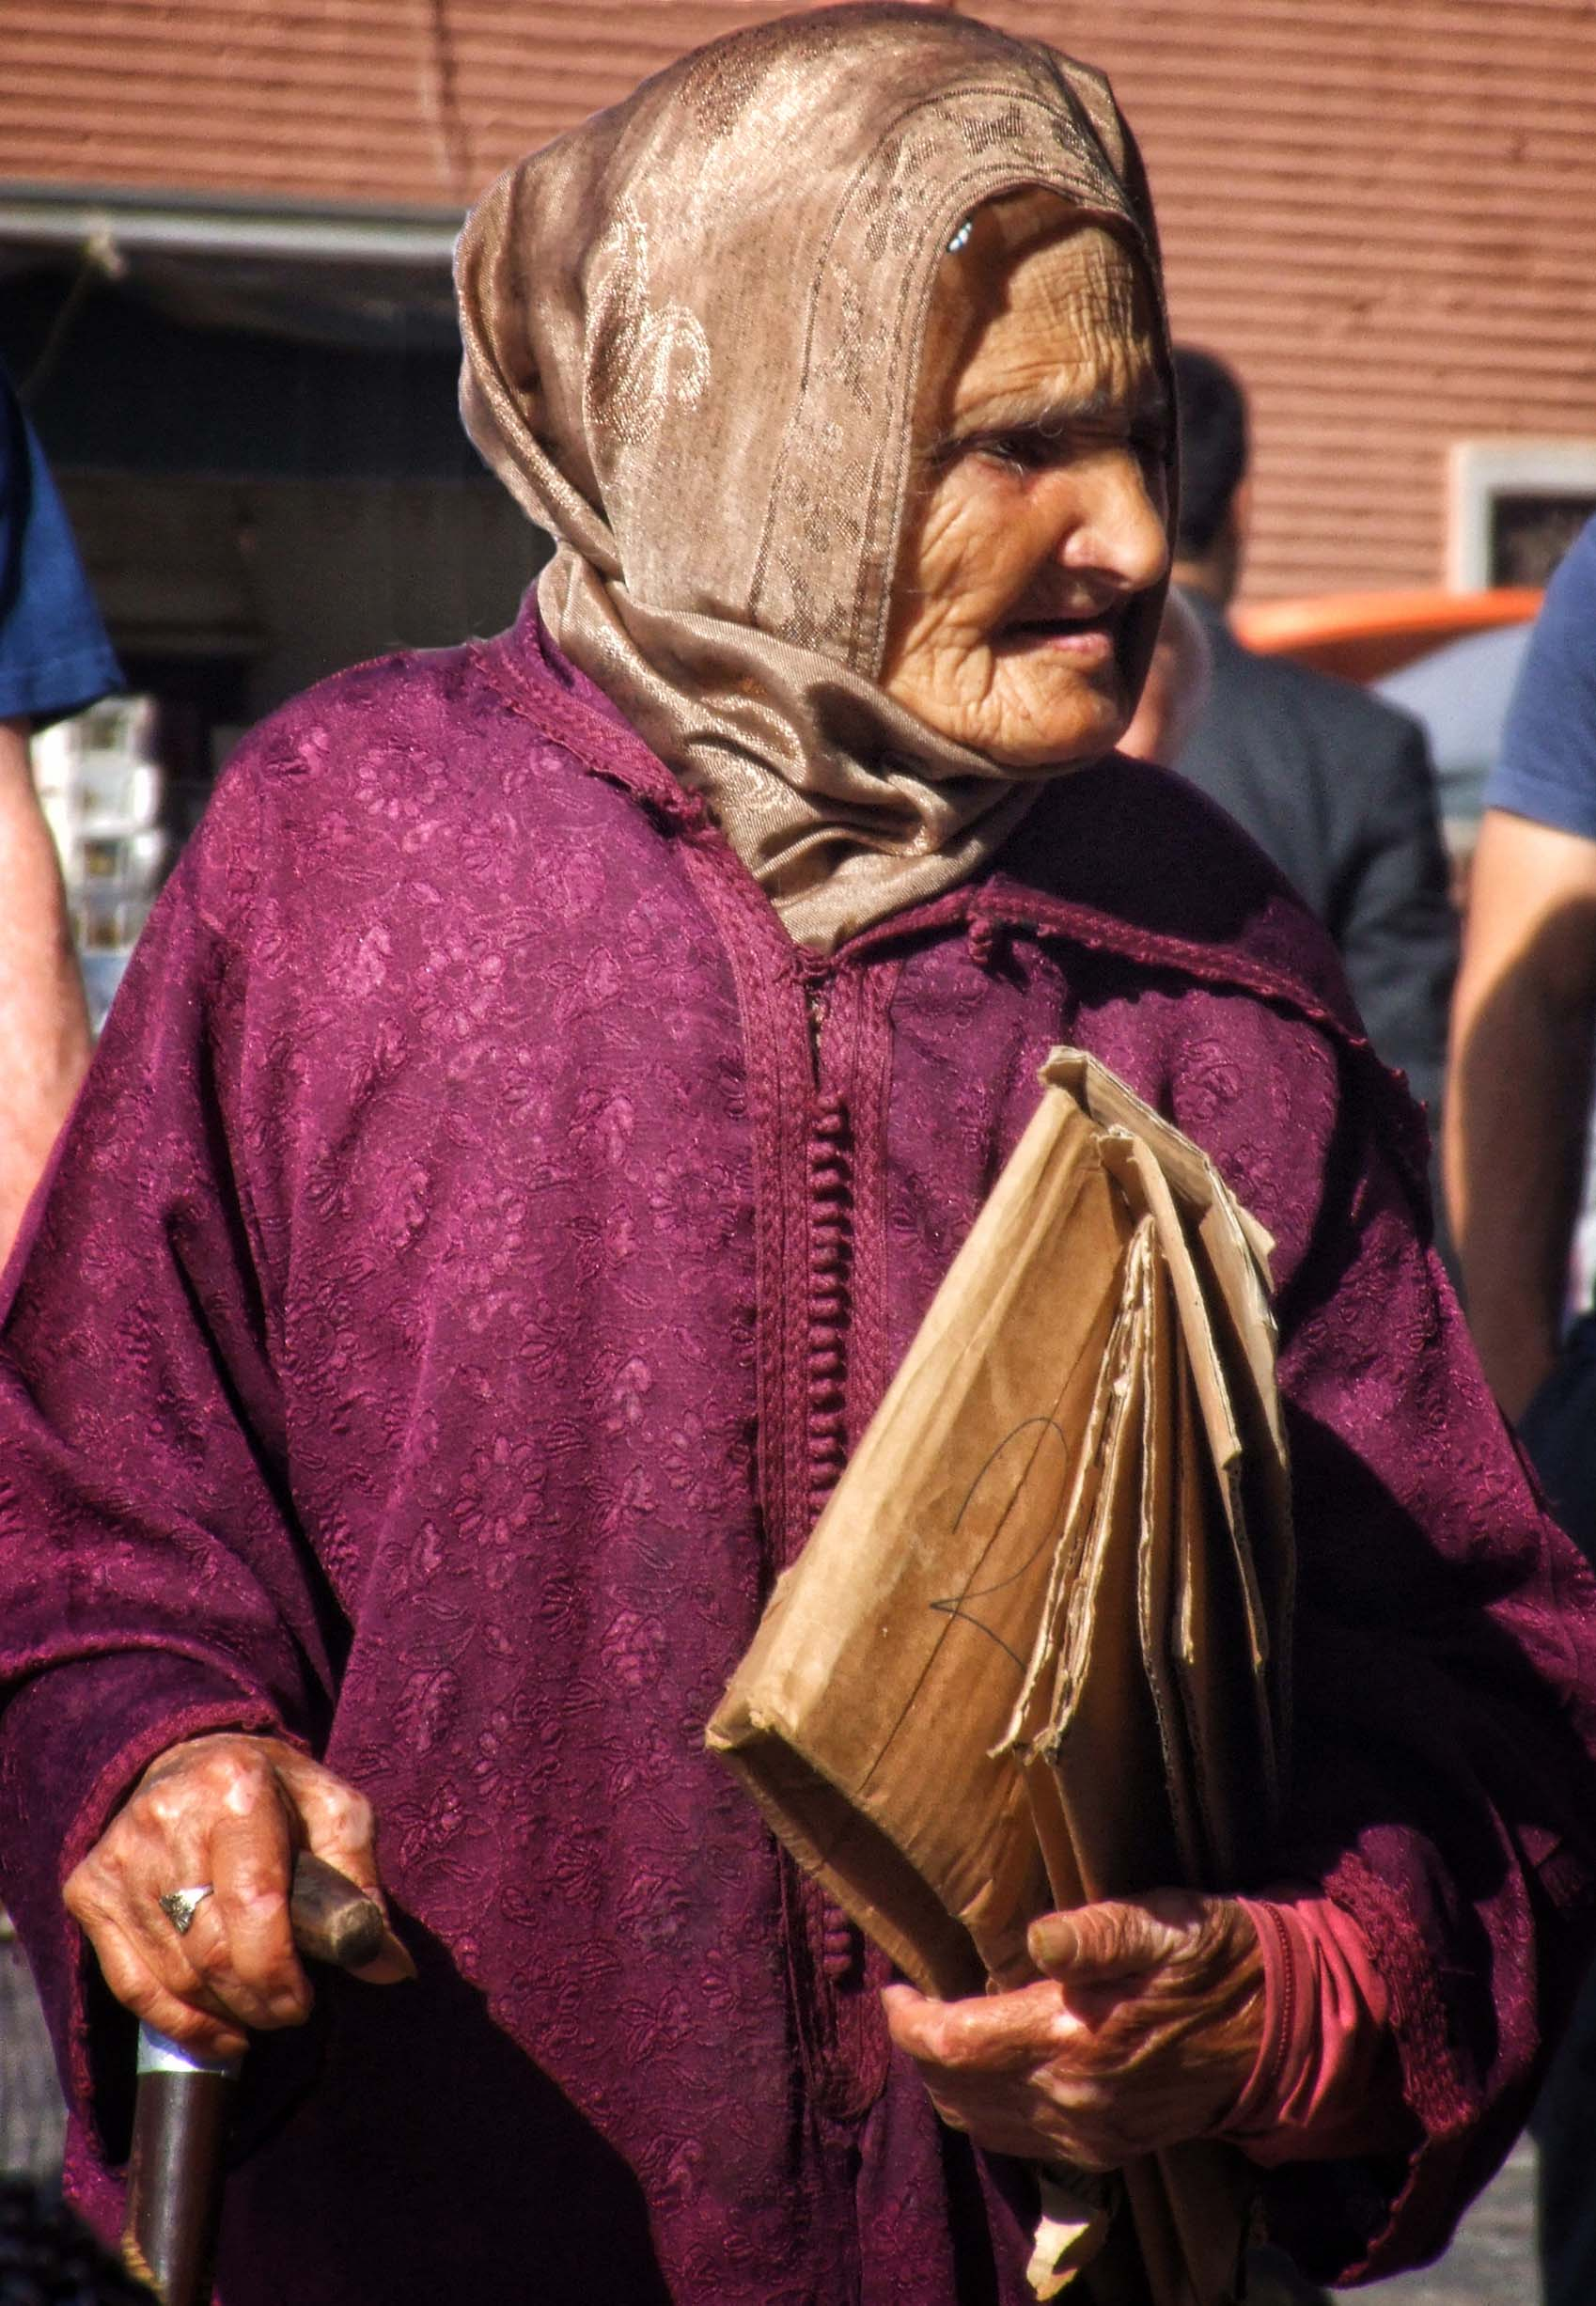 Elderly lady in purple robe and brown scarf